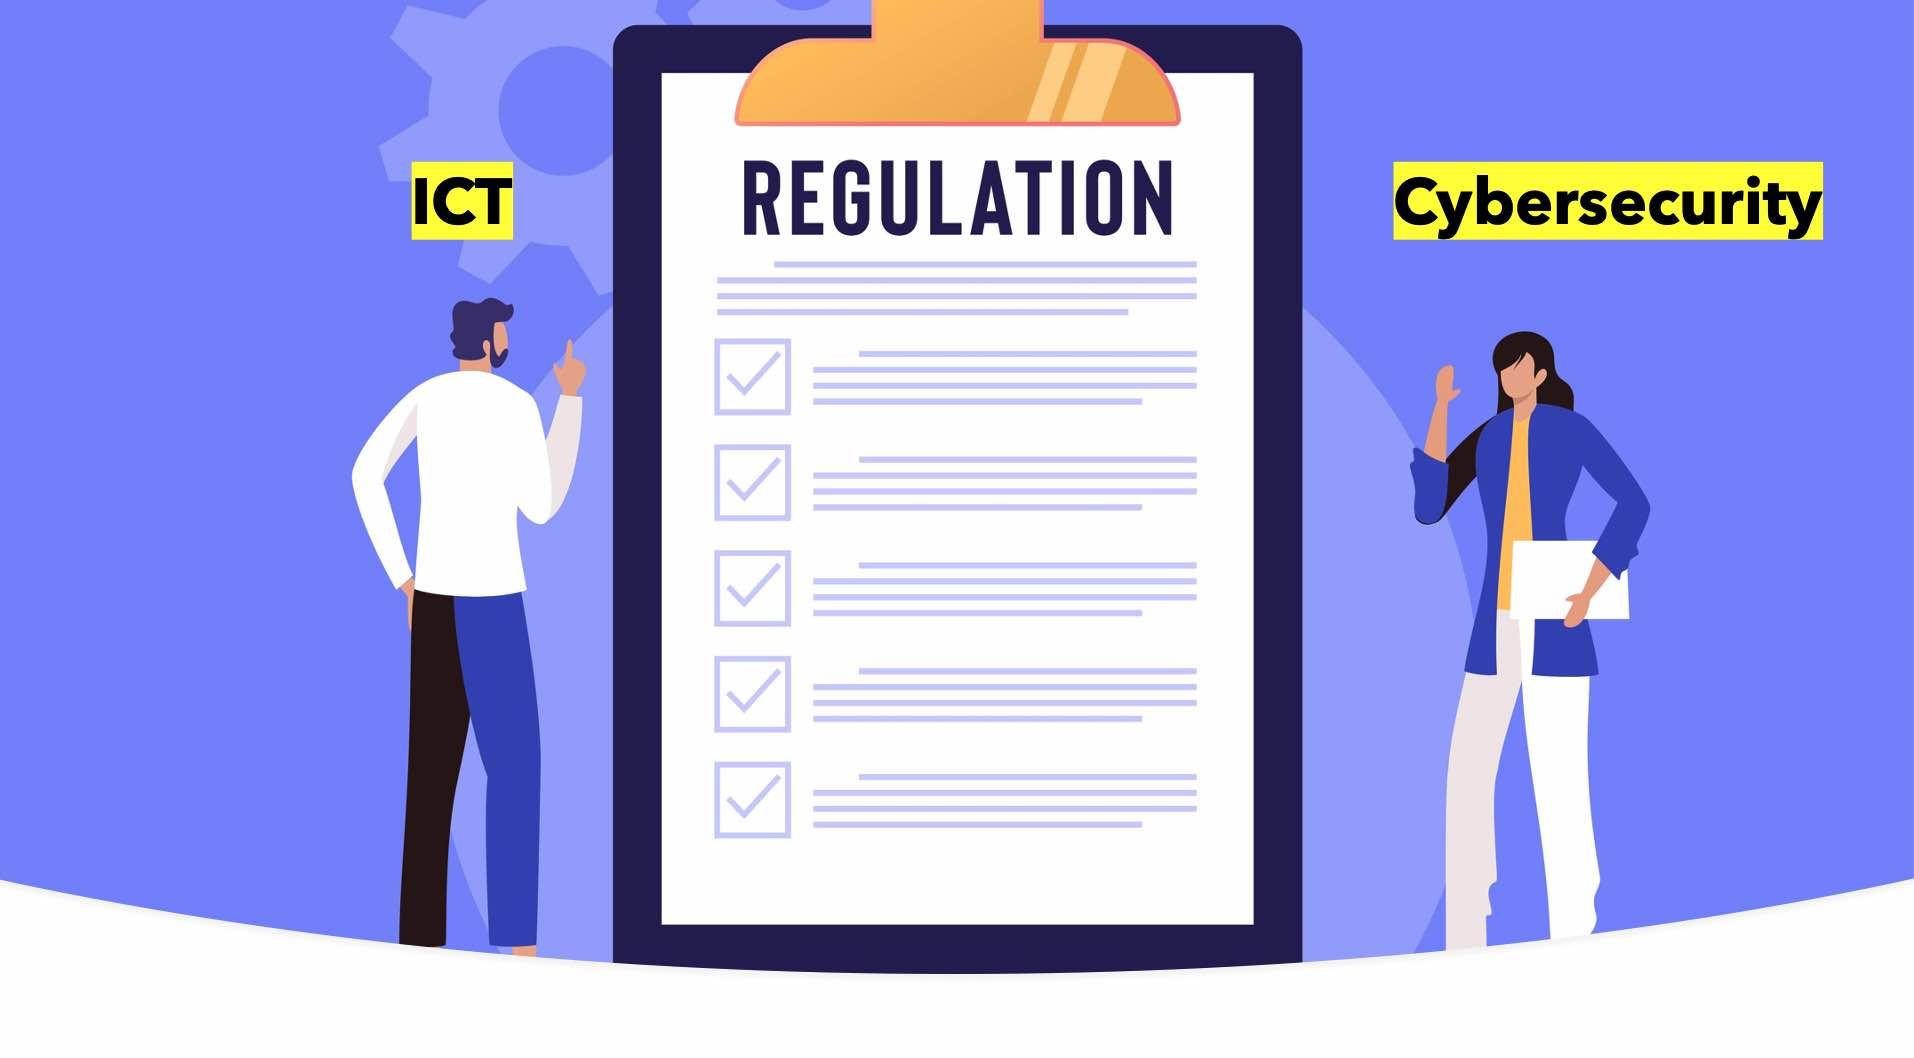 ICT & Cybersecurity Related Regulations